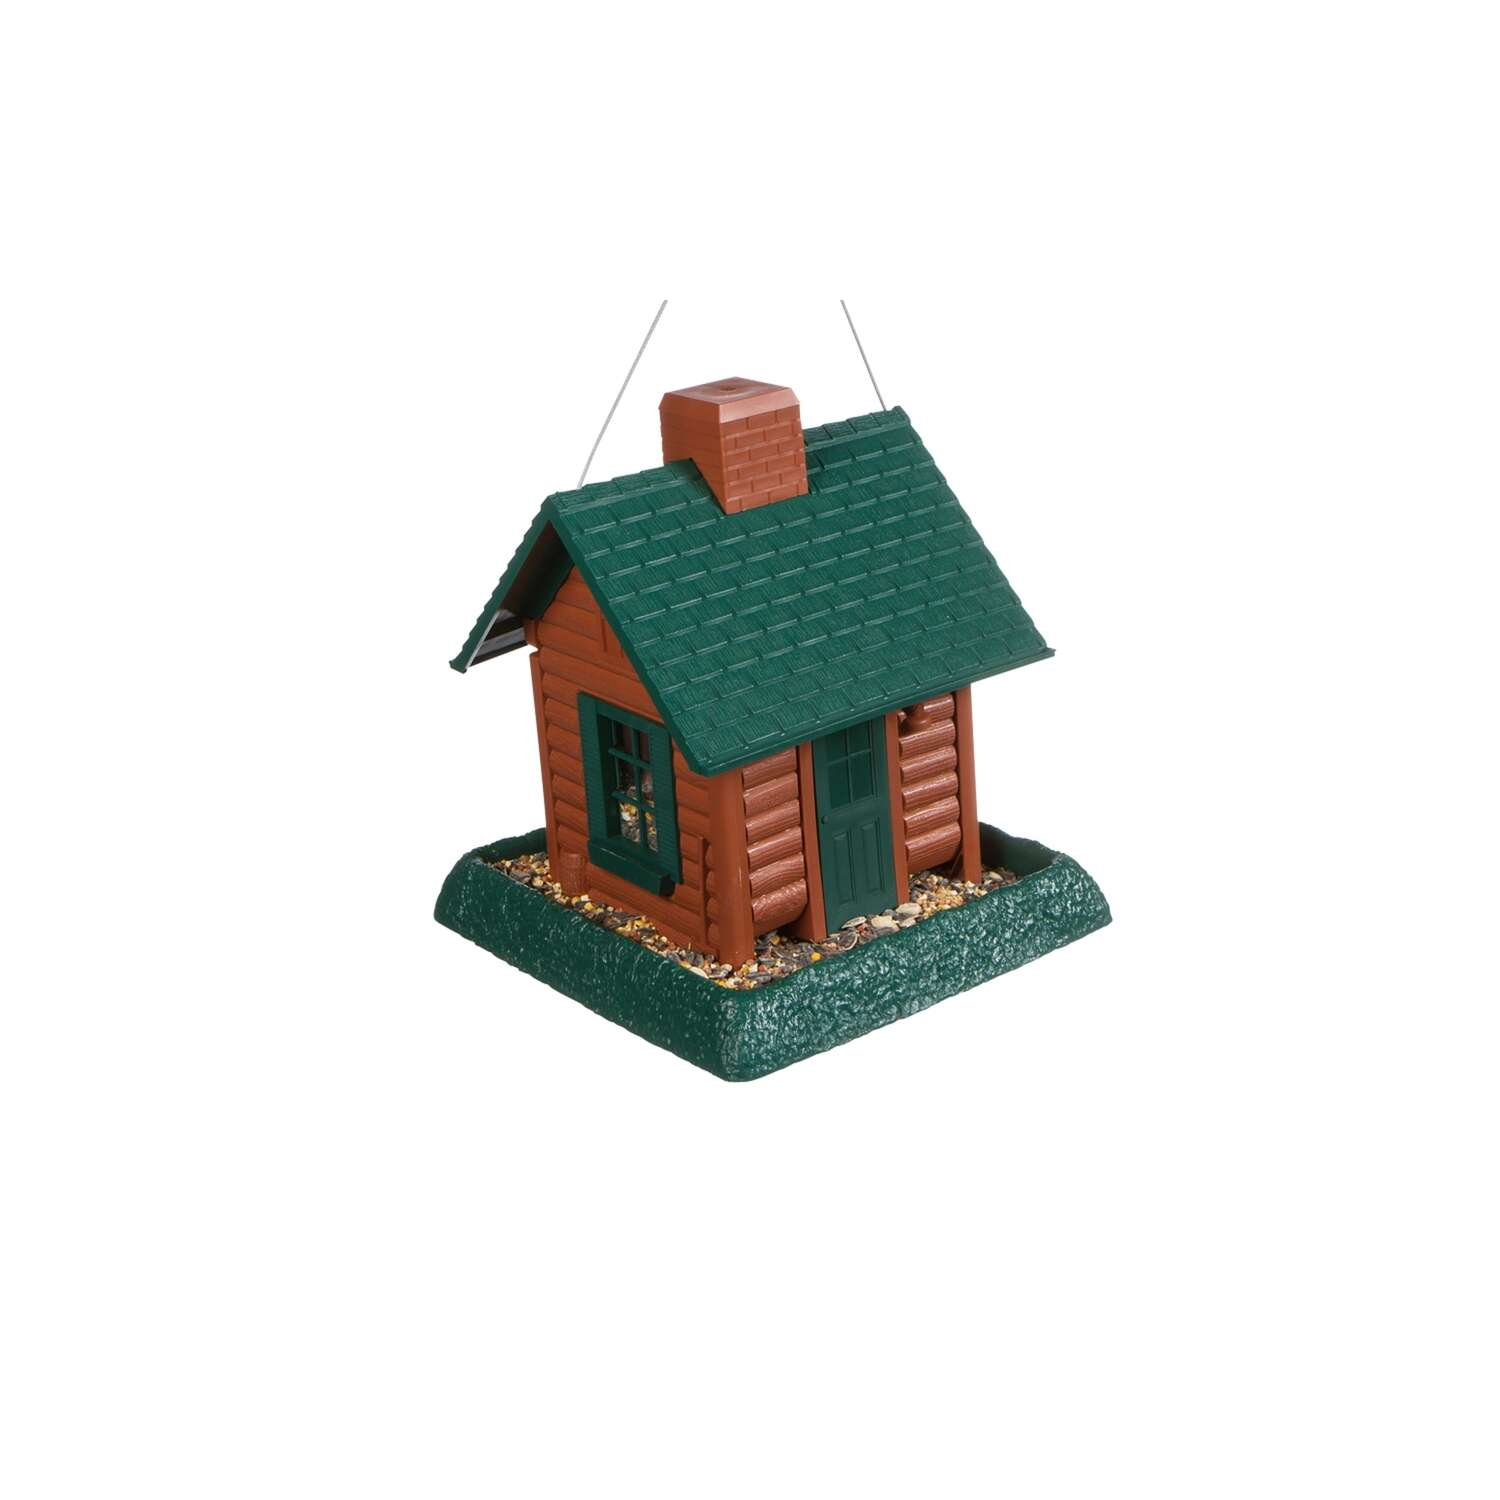 North States Log Cabin Wild Bird 1 lb. Plastic Hopper Bird Feeder 4 ports